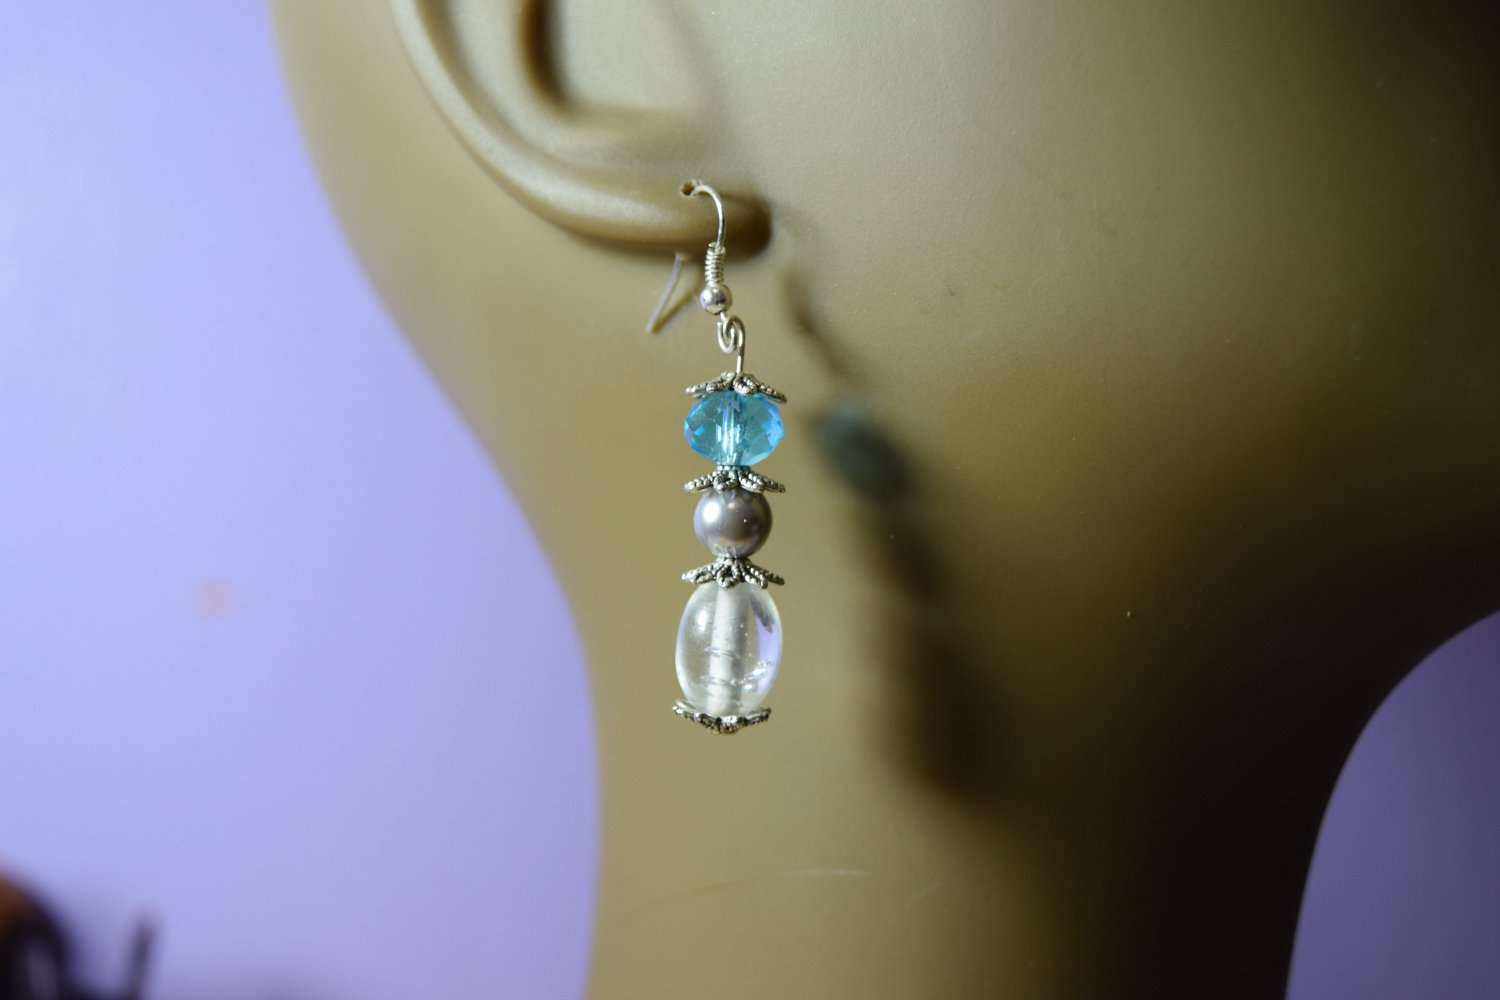 Clear and blue earrings